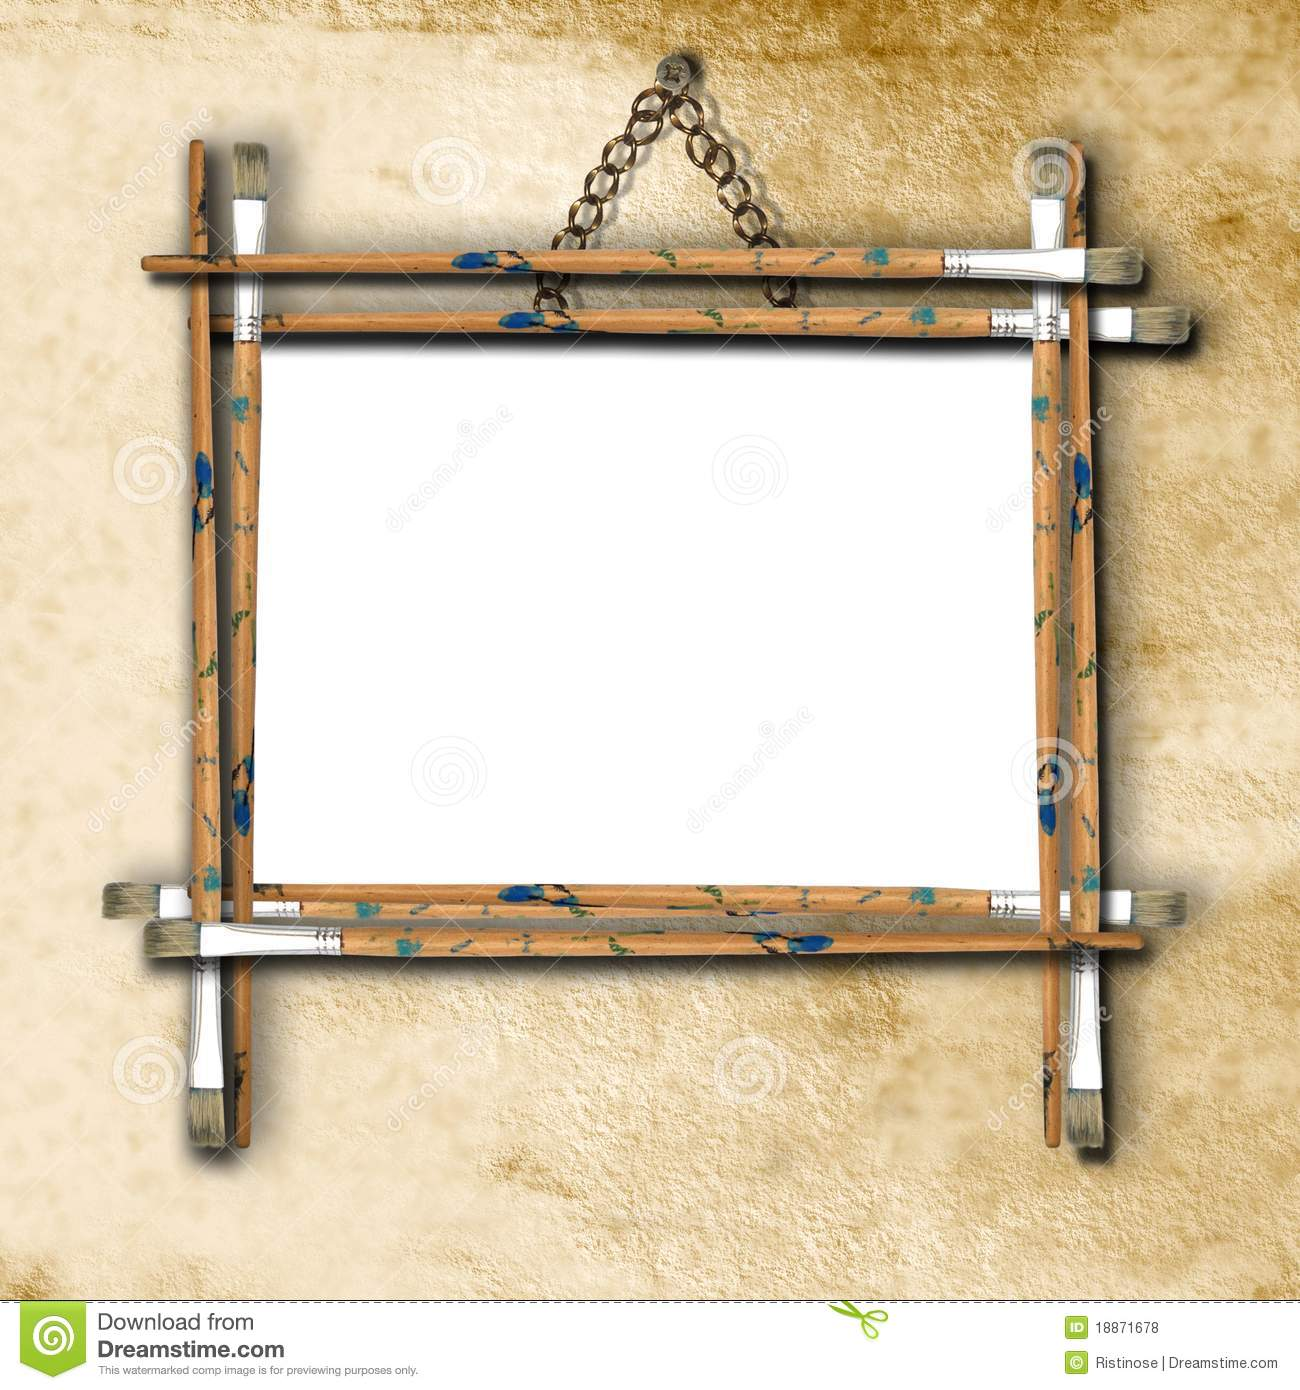 Empty frame on the wall stock photo. Image of design - 18871678